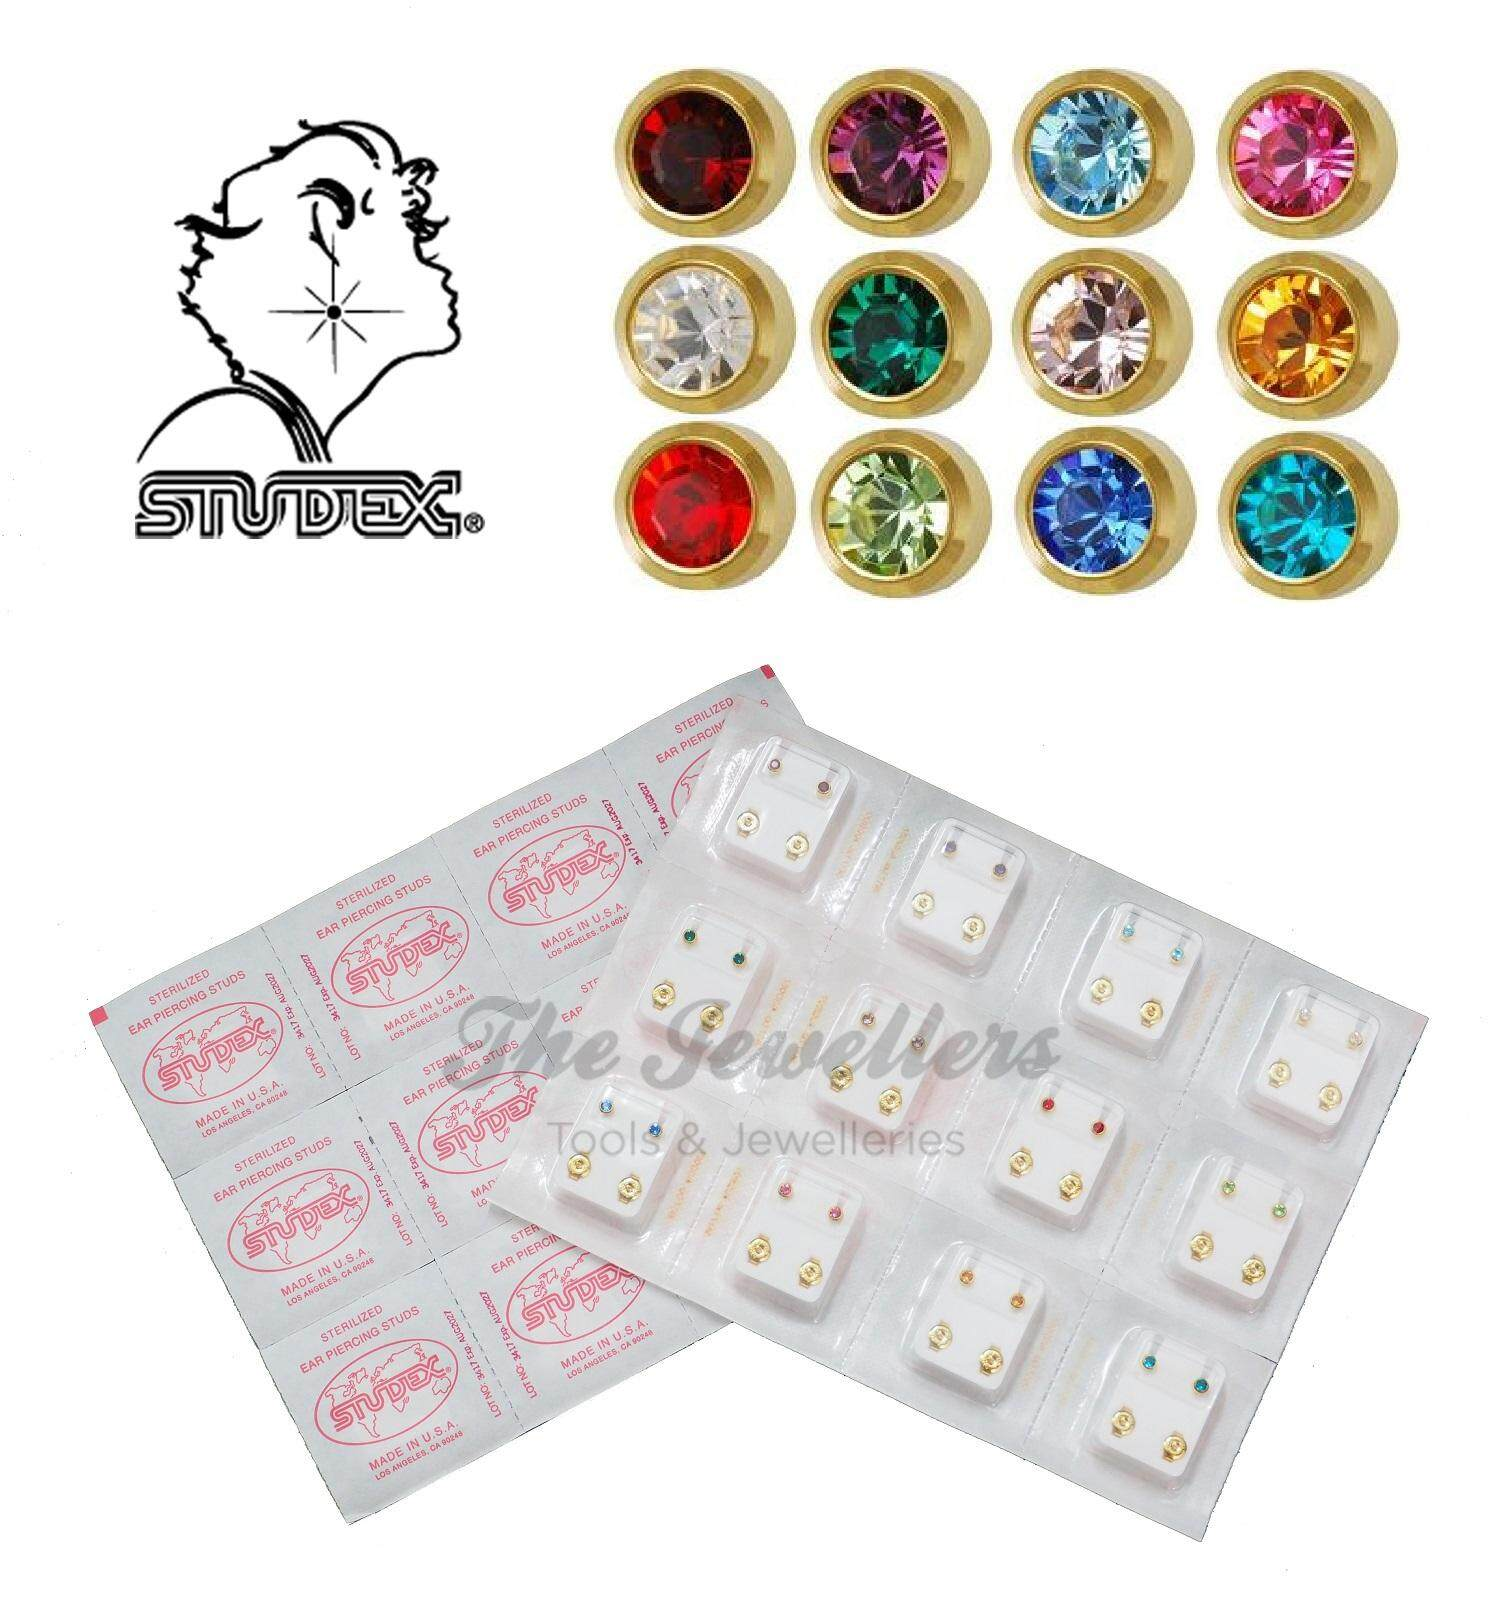 Studex 12 Pairs 4mm Gold plated Ear Piercing Stud Earrings Set with 12 Different Color